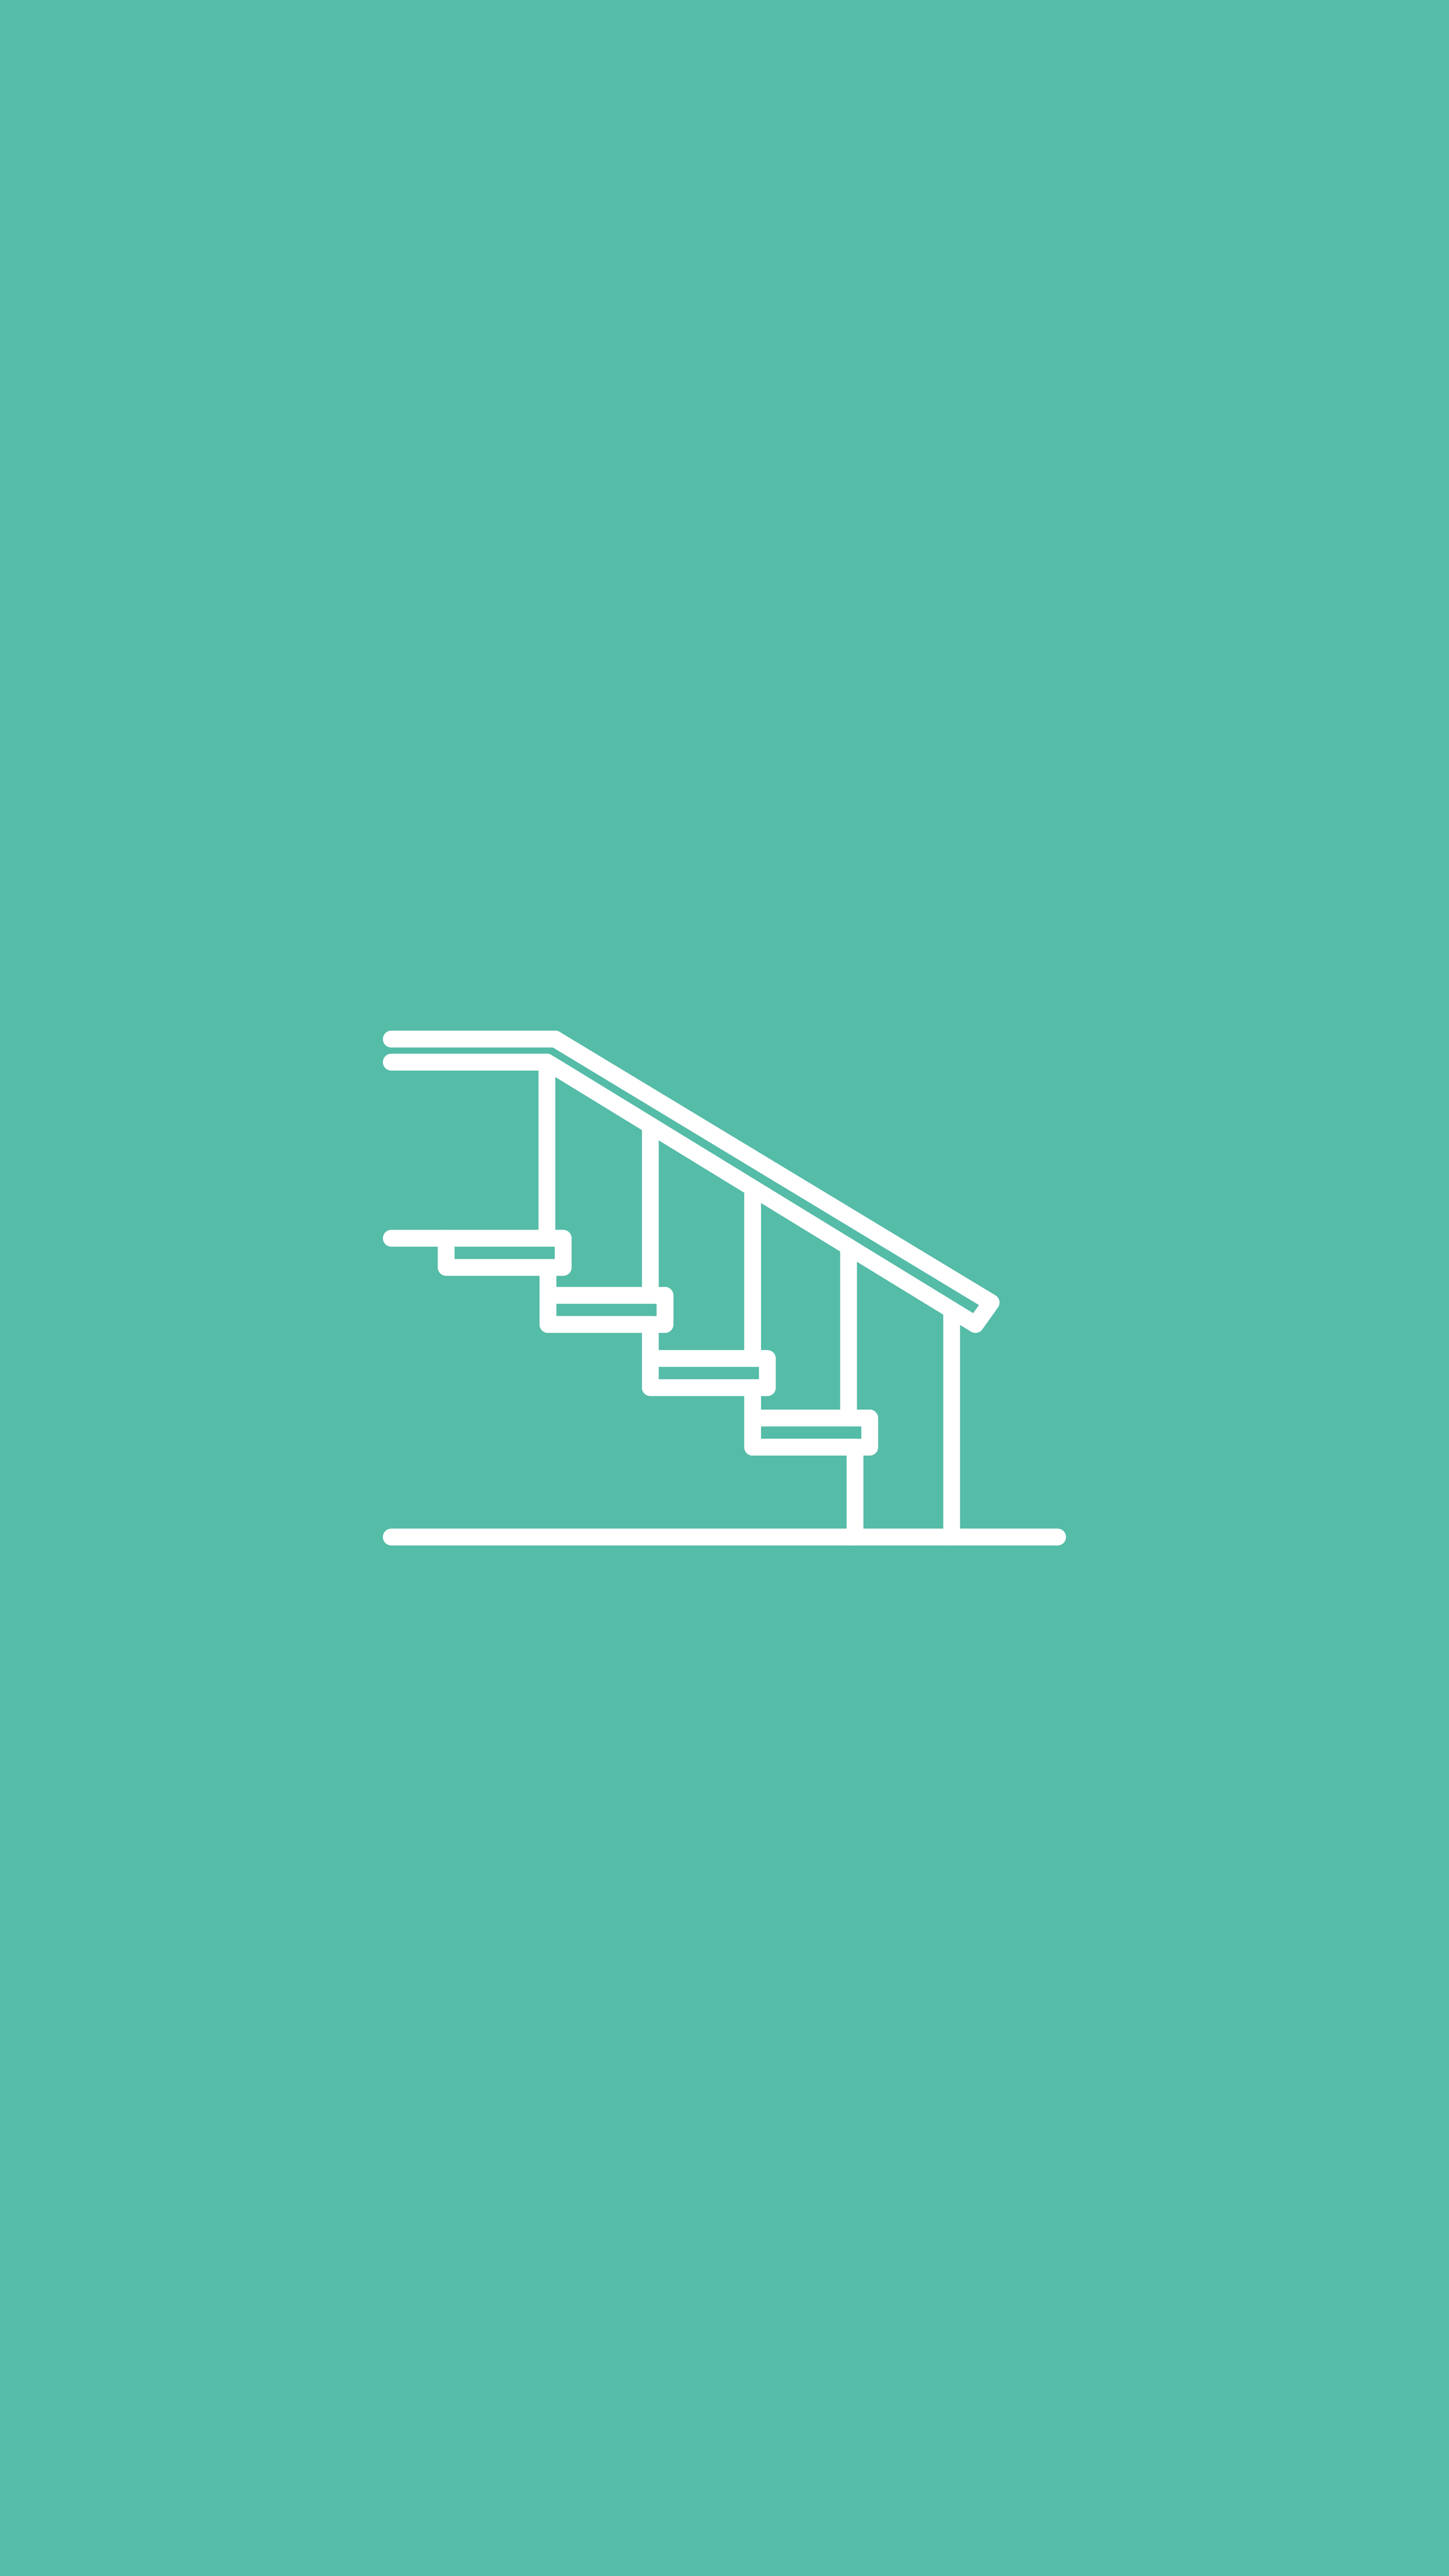 Staircase, Stairs, Steps